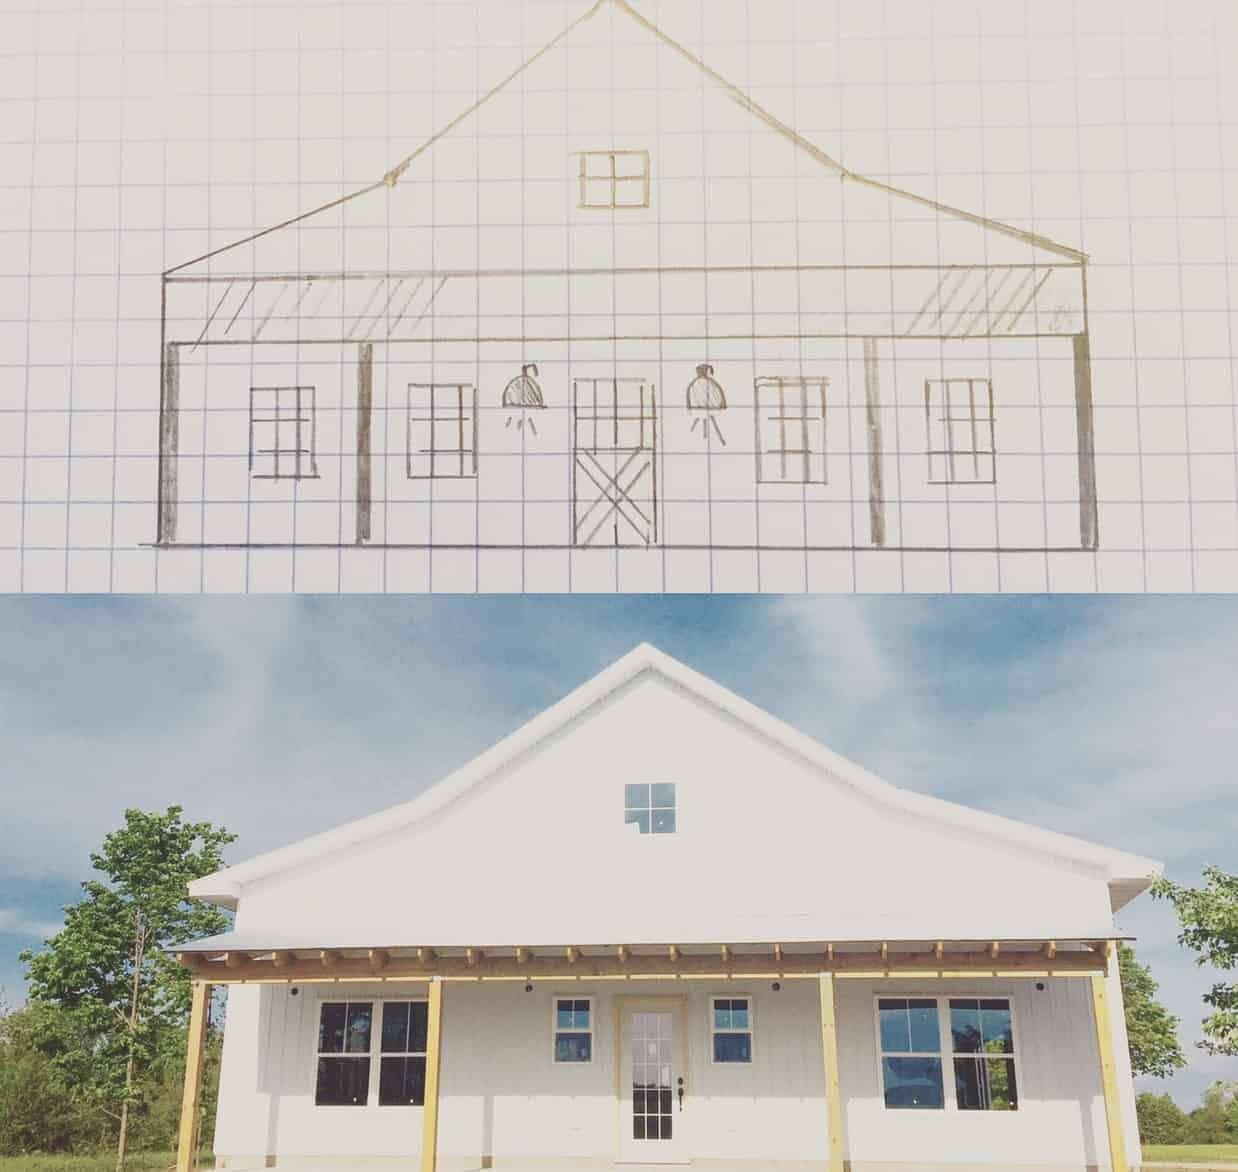 Top of photo shows a hand drawn sketch of a farmhouse and bottom shows the DIY house built with white siding and a covered porch with wooden posts